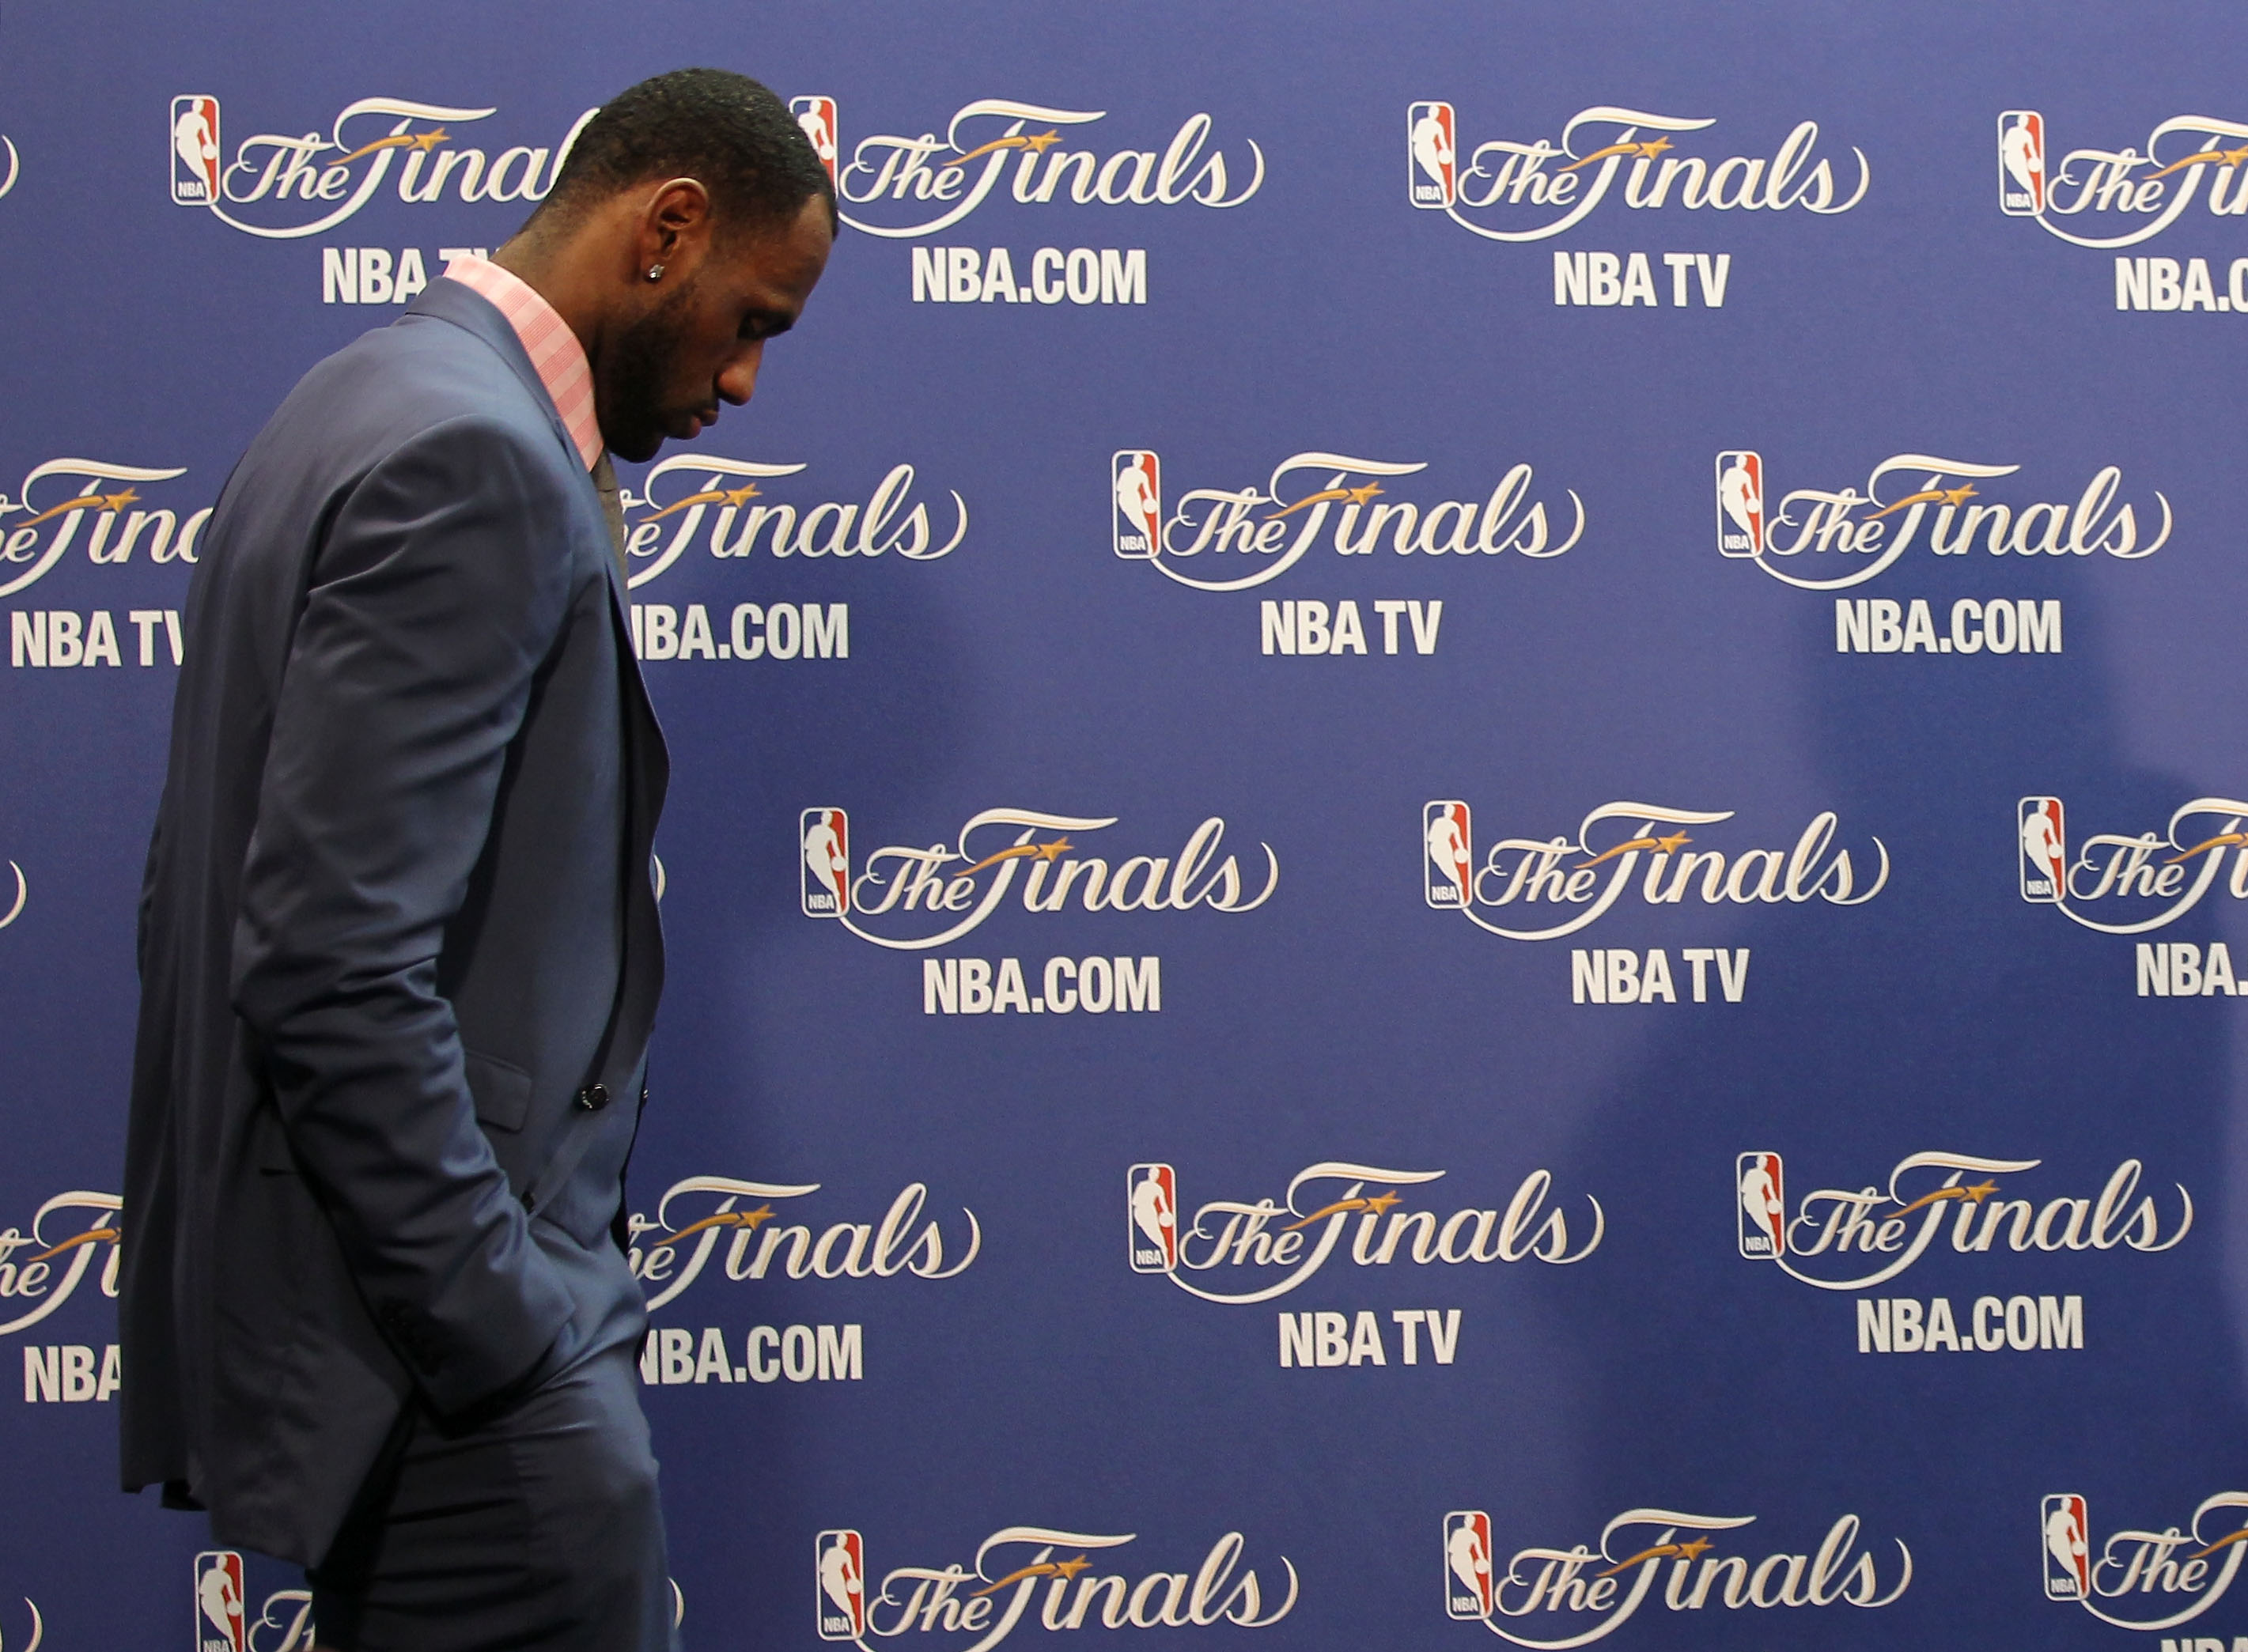 MIAMI, FL - JUNE 12:  LeBron James #6 of the Miami Heat walks into the interview room to answer questions after the Heat were defeated 105-95 by the Dallas Mavericks in Game Six of the 2011 NBA Finals at American Airlines Arena on June 12, 2011 in Miami,